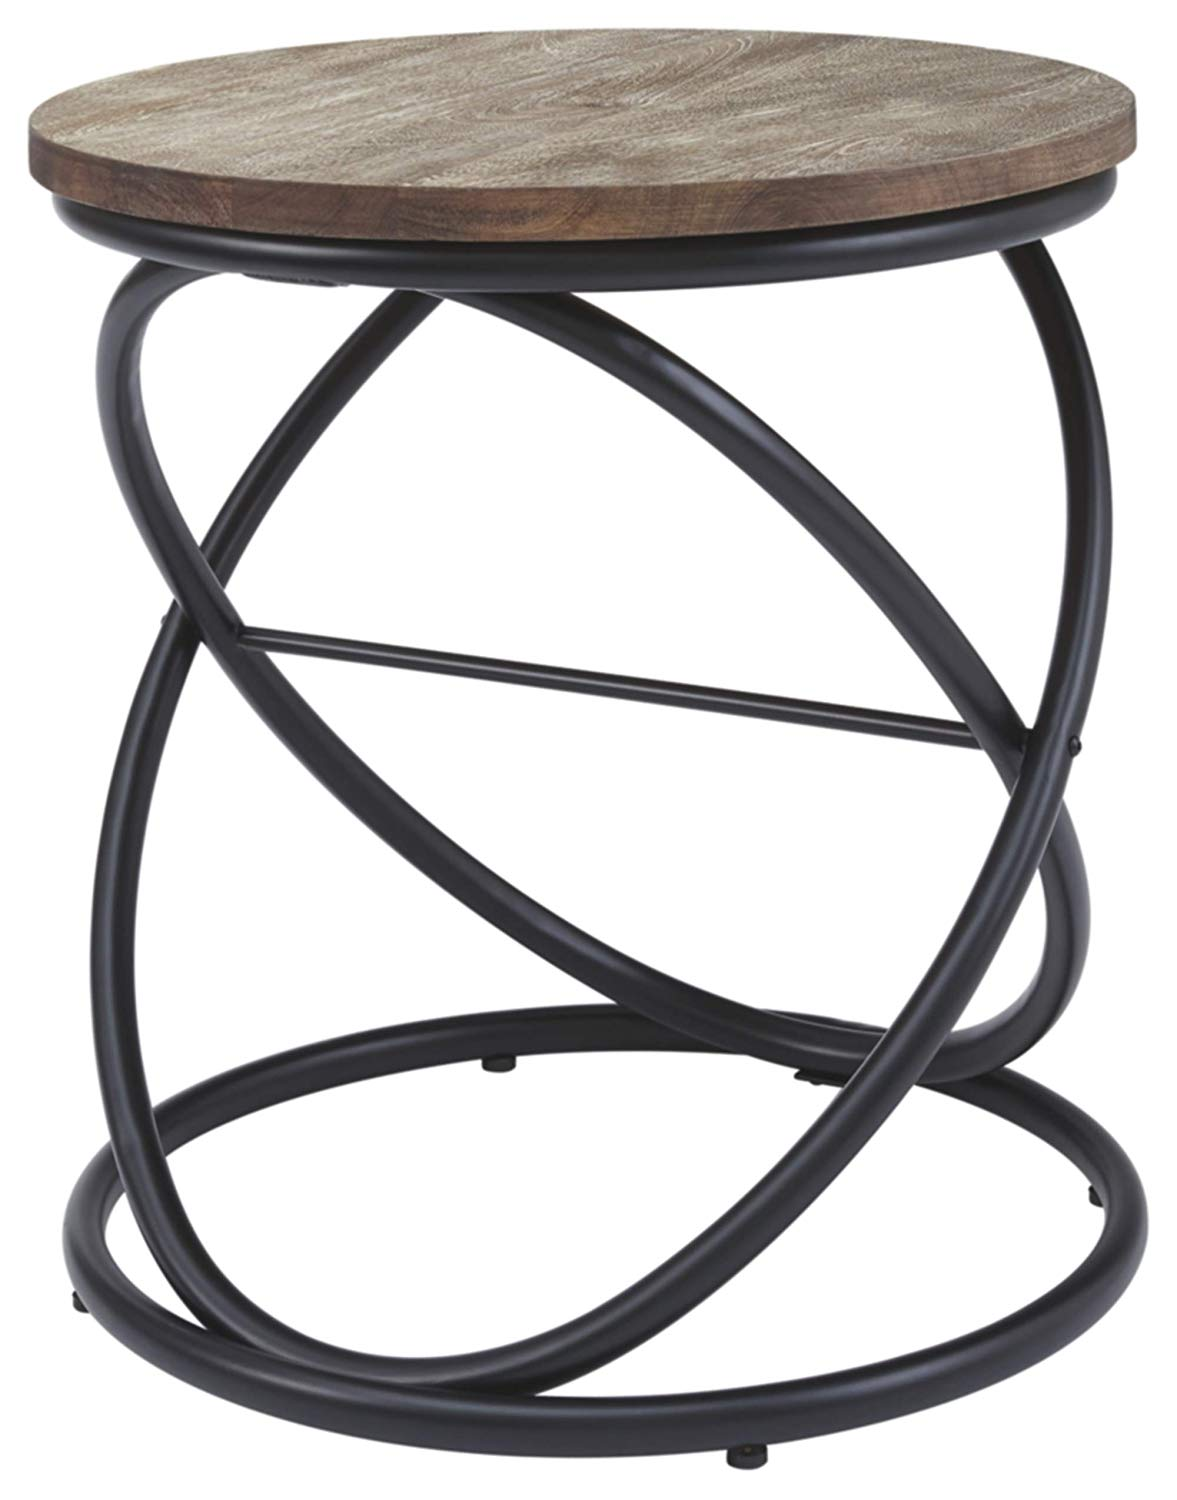 ashley furniture signature design charliburi round end table contemporary brown black kitchen dining factory outdoor patio glass log cabin tables large coffee accent laura